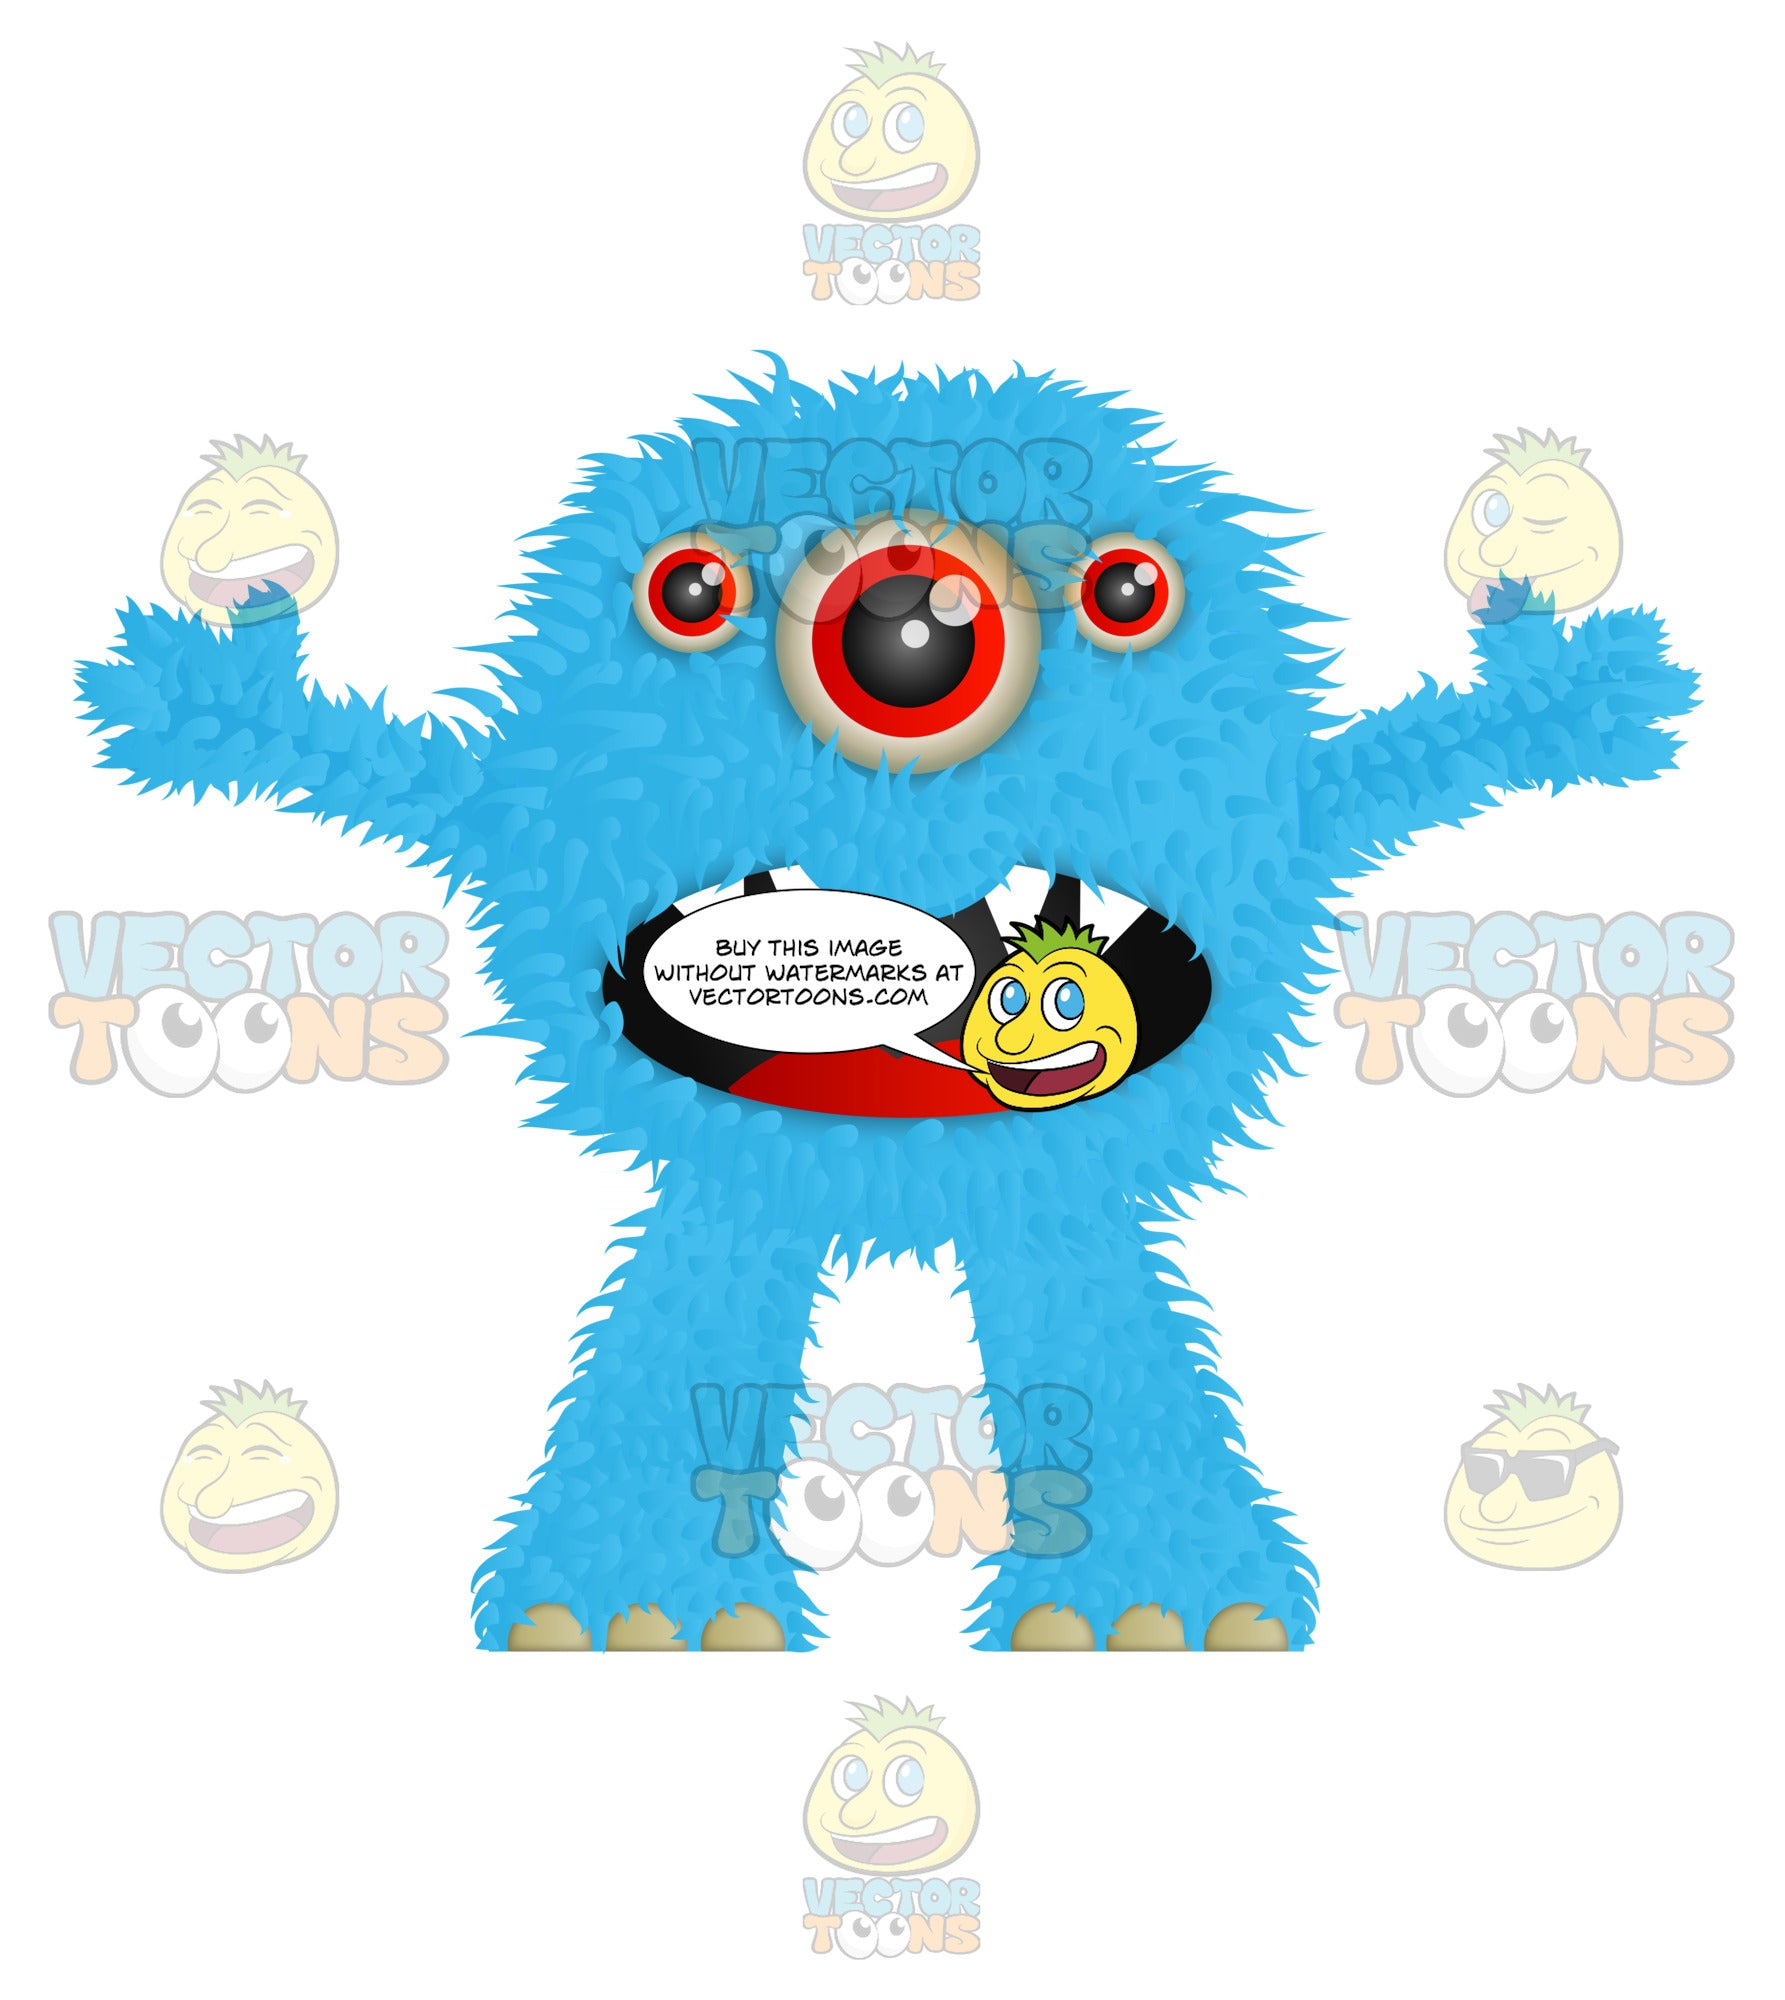 Blue Furry Monster With Three Eyes Sharp Teeth And Arms Wide Open